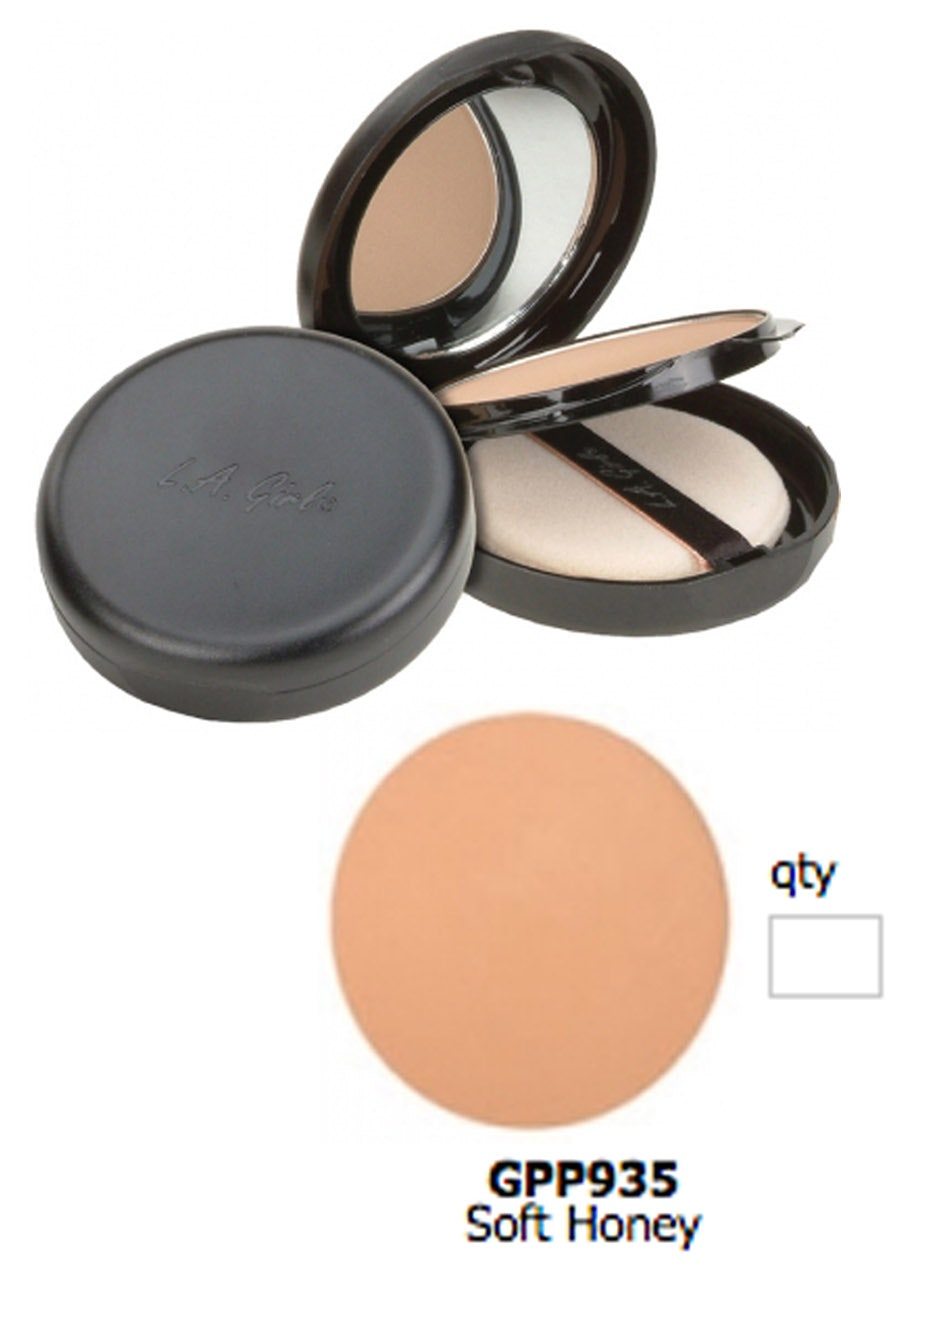 LA Girl Ultimate Pressed Powder - Soft Honey